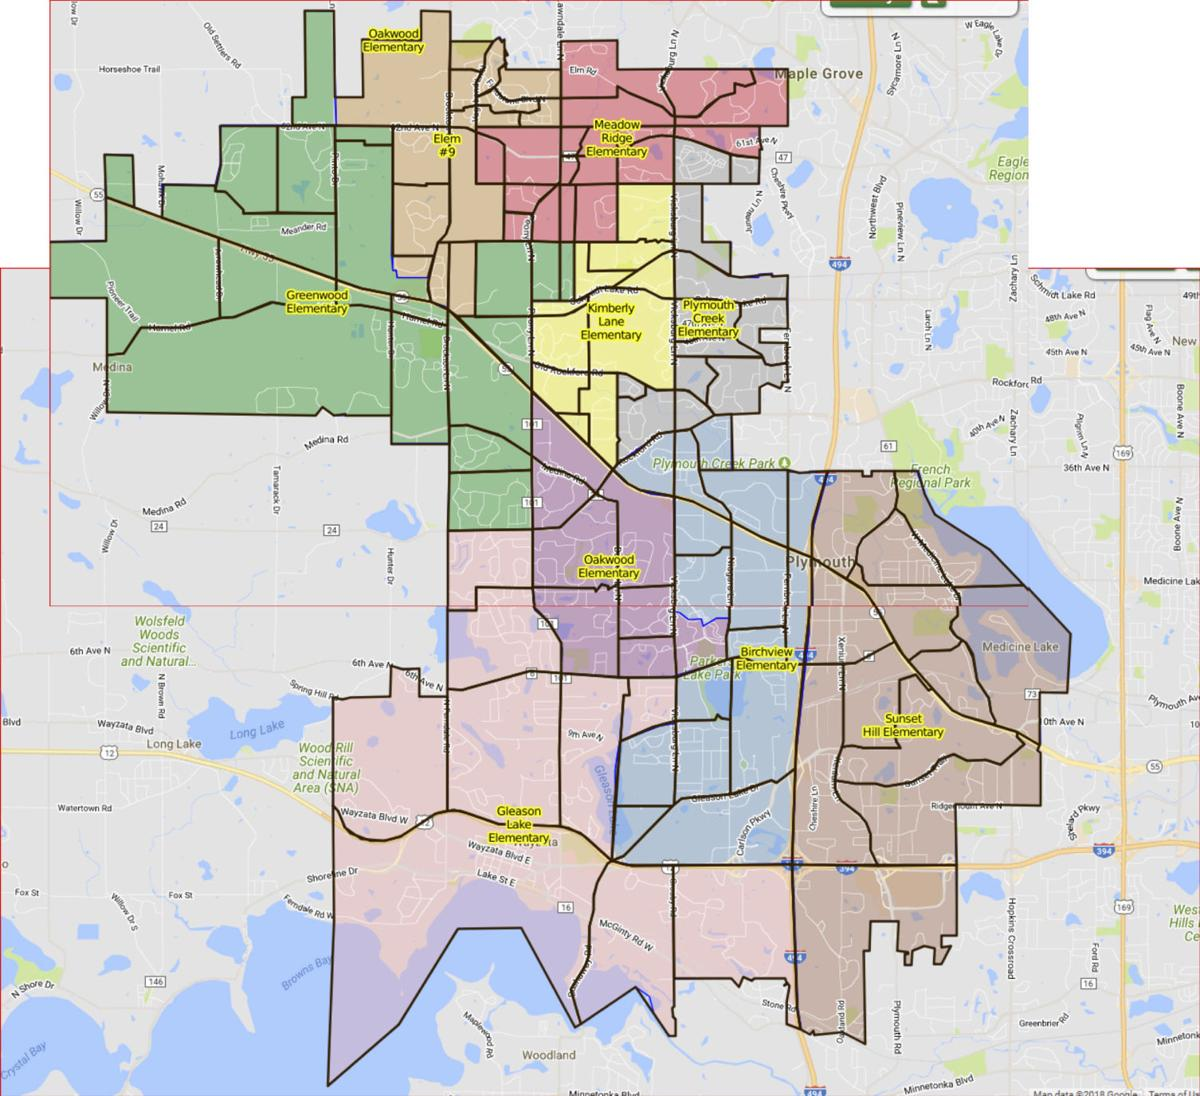 Wayzata School District Map Public input session will be May 2 for new school attendance areas  Wayzata School District Map